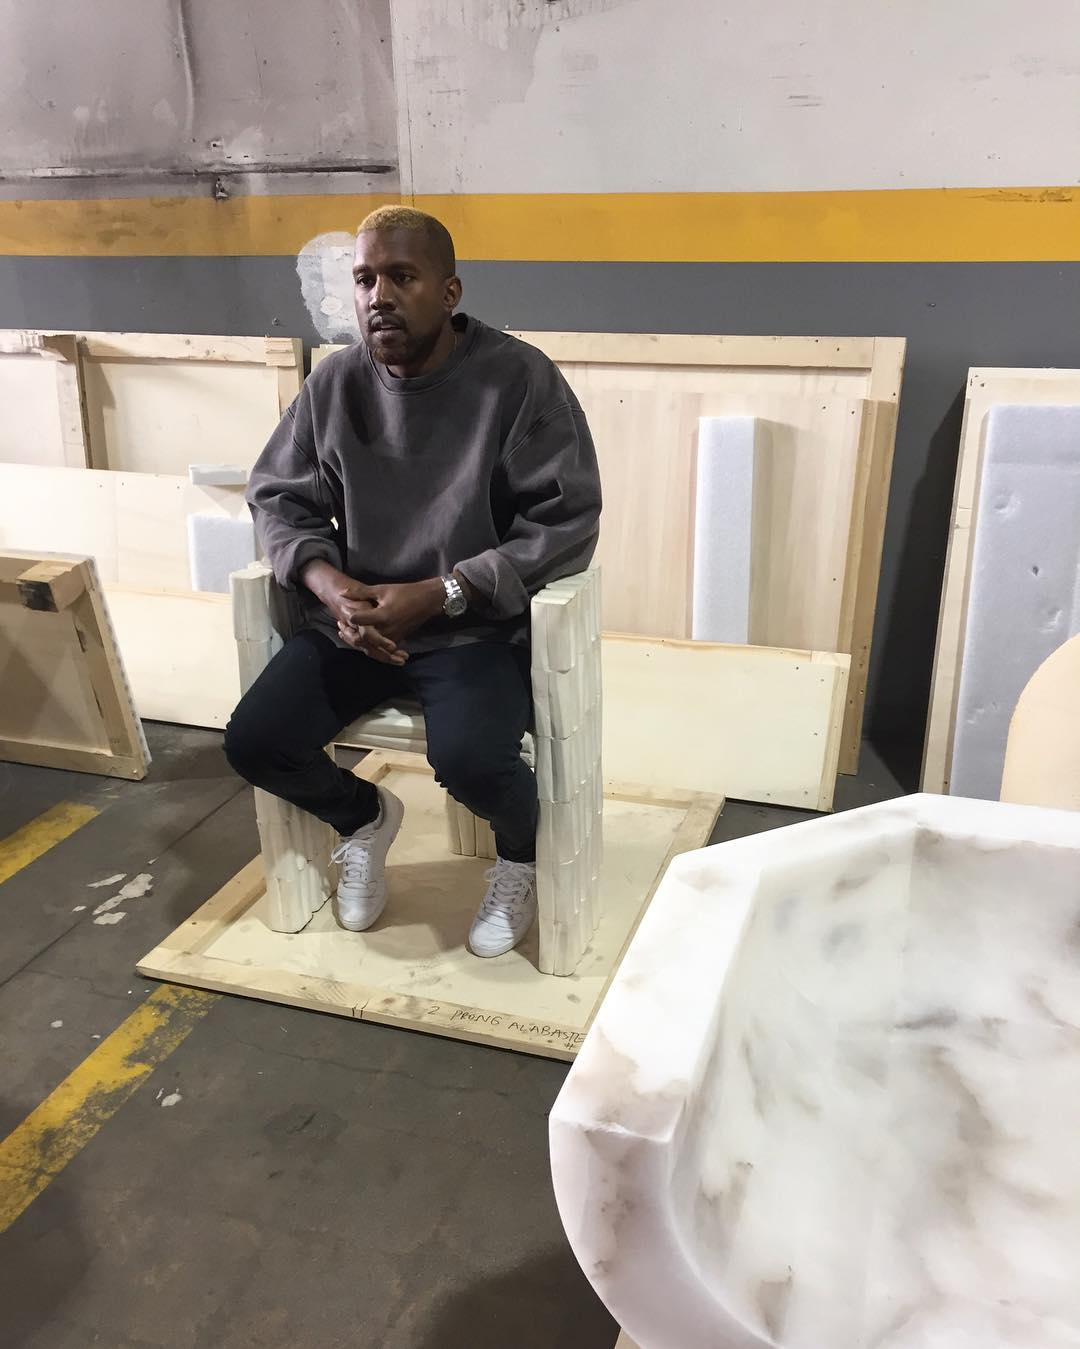 Kanye West's First Appearance Since Hospital In Unreleased Adidas Yeezy Season 4